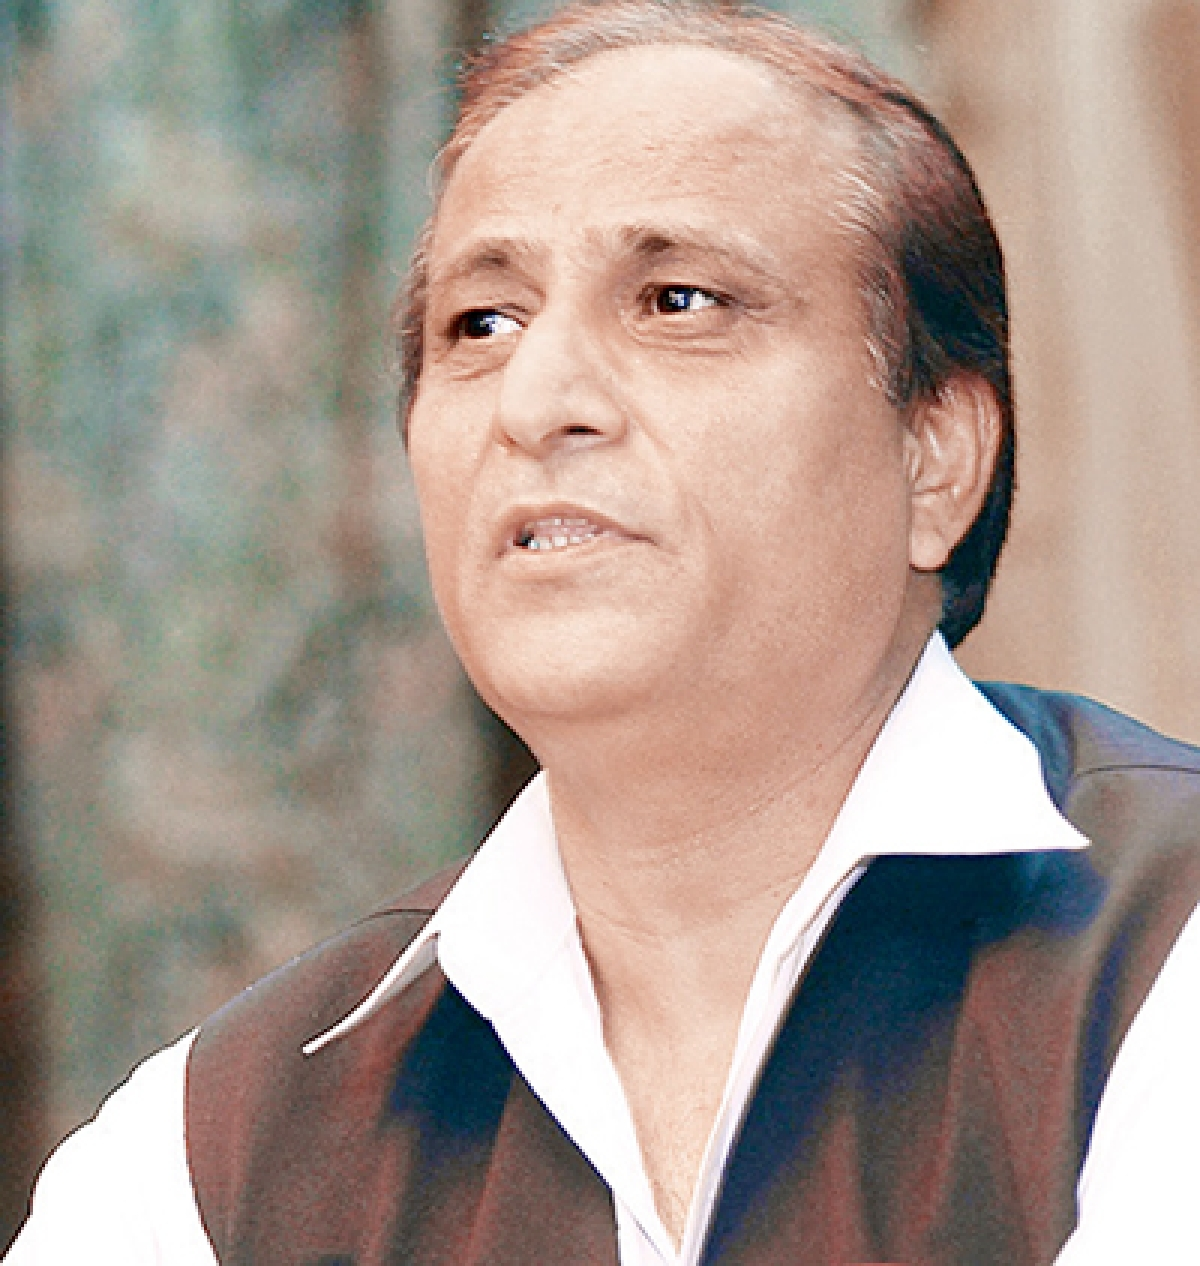 Azam Khan quizzed for carrying live bullets at airport